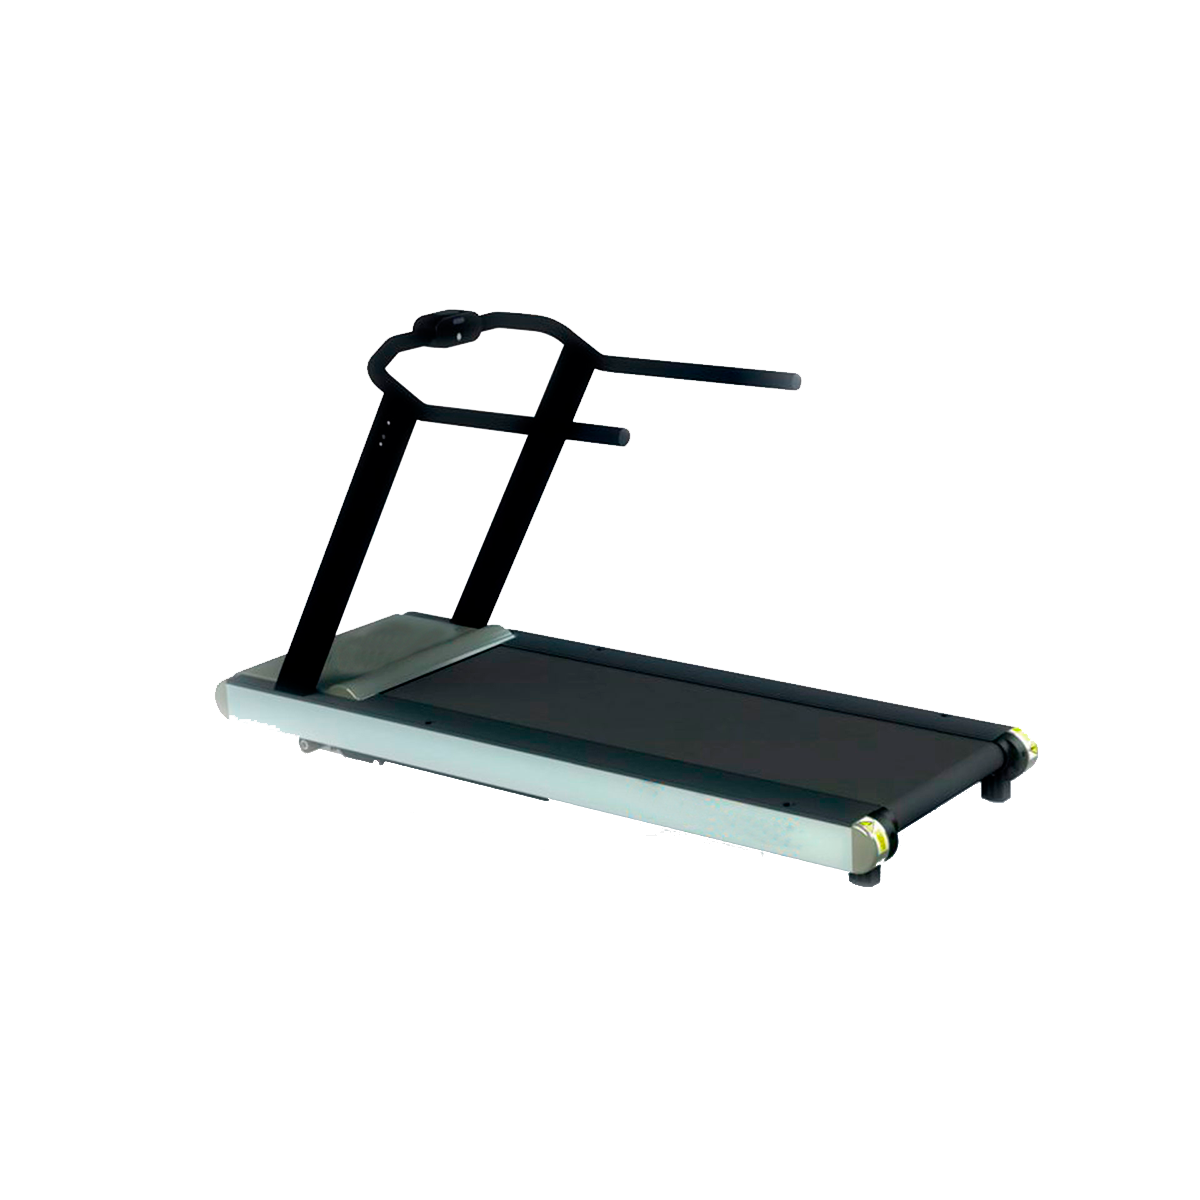 Treadmill ergometers